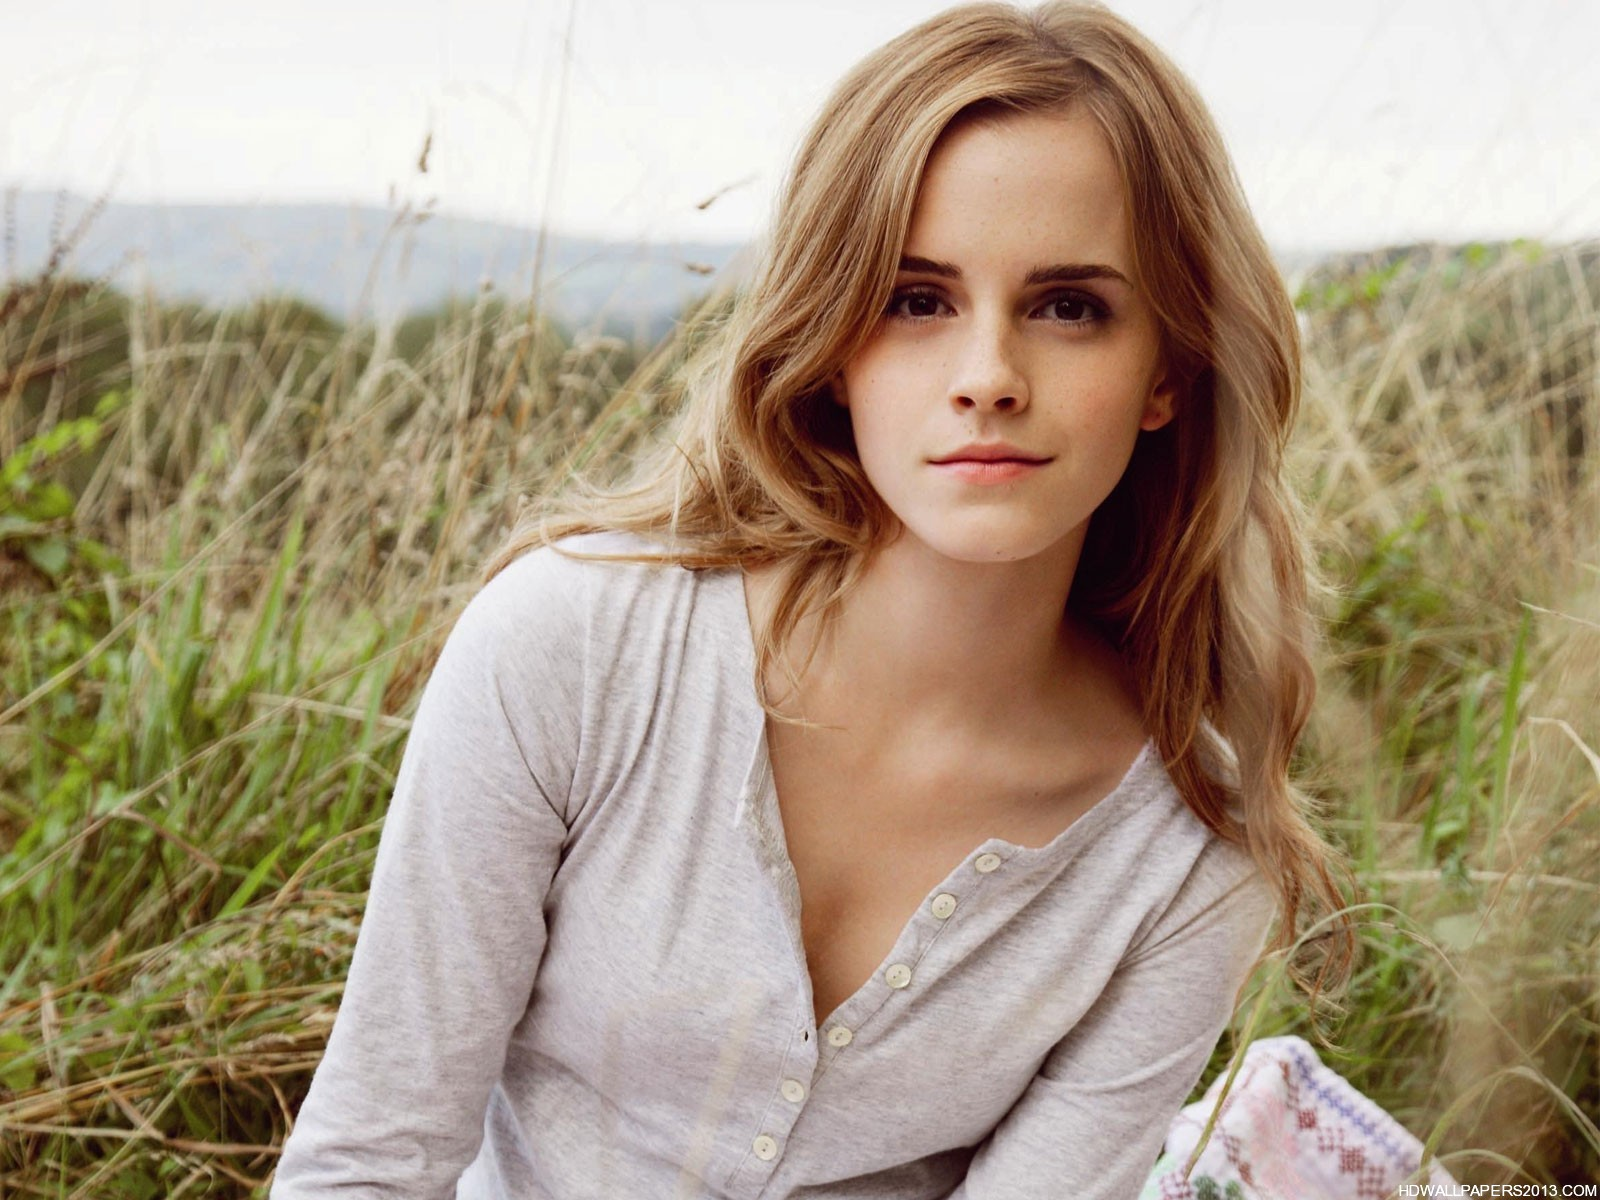 emma watson | high definition wallpapers, high definition backgrounds